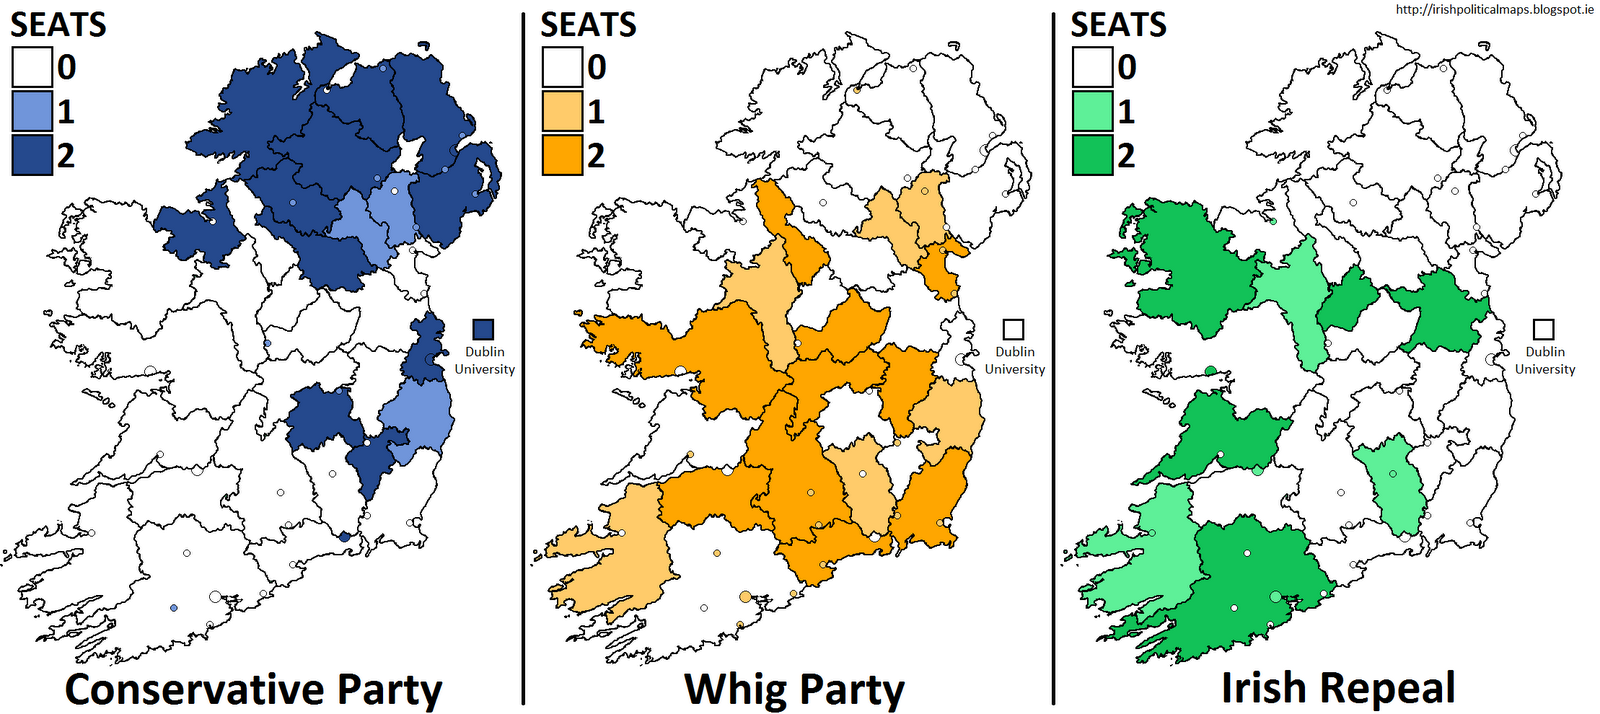 in 1837 the irish repeal association had made the decision to align with the whig party when running candidates for election